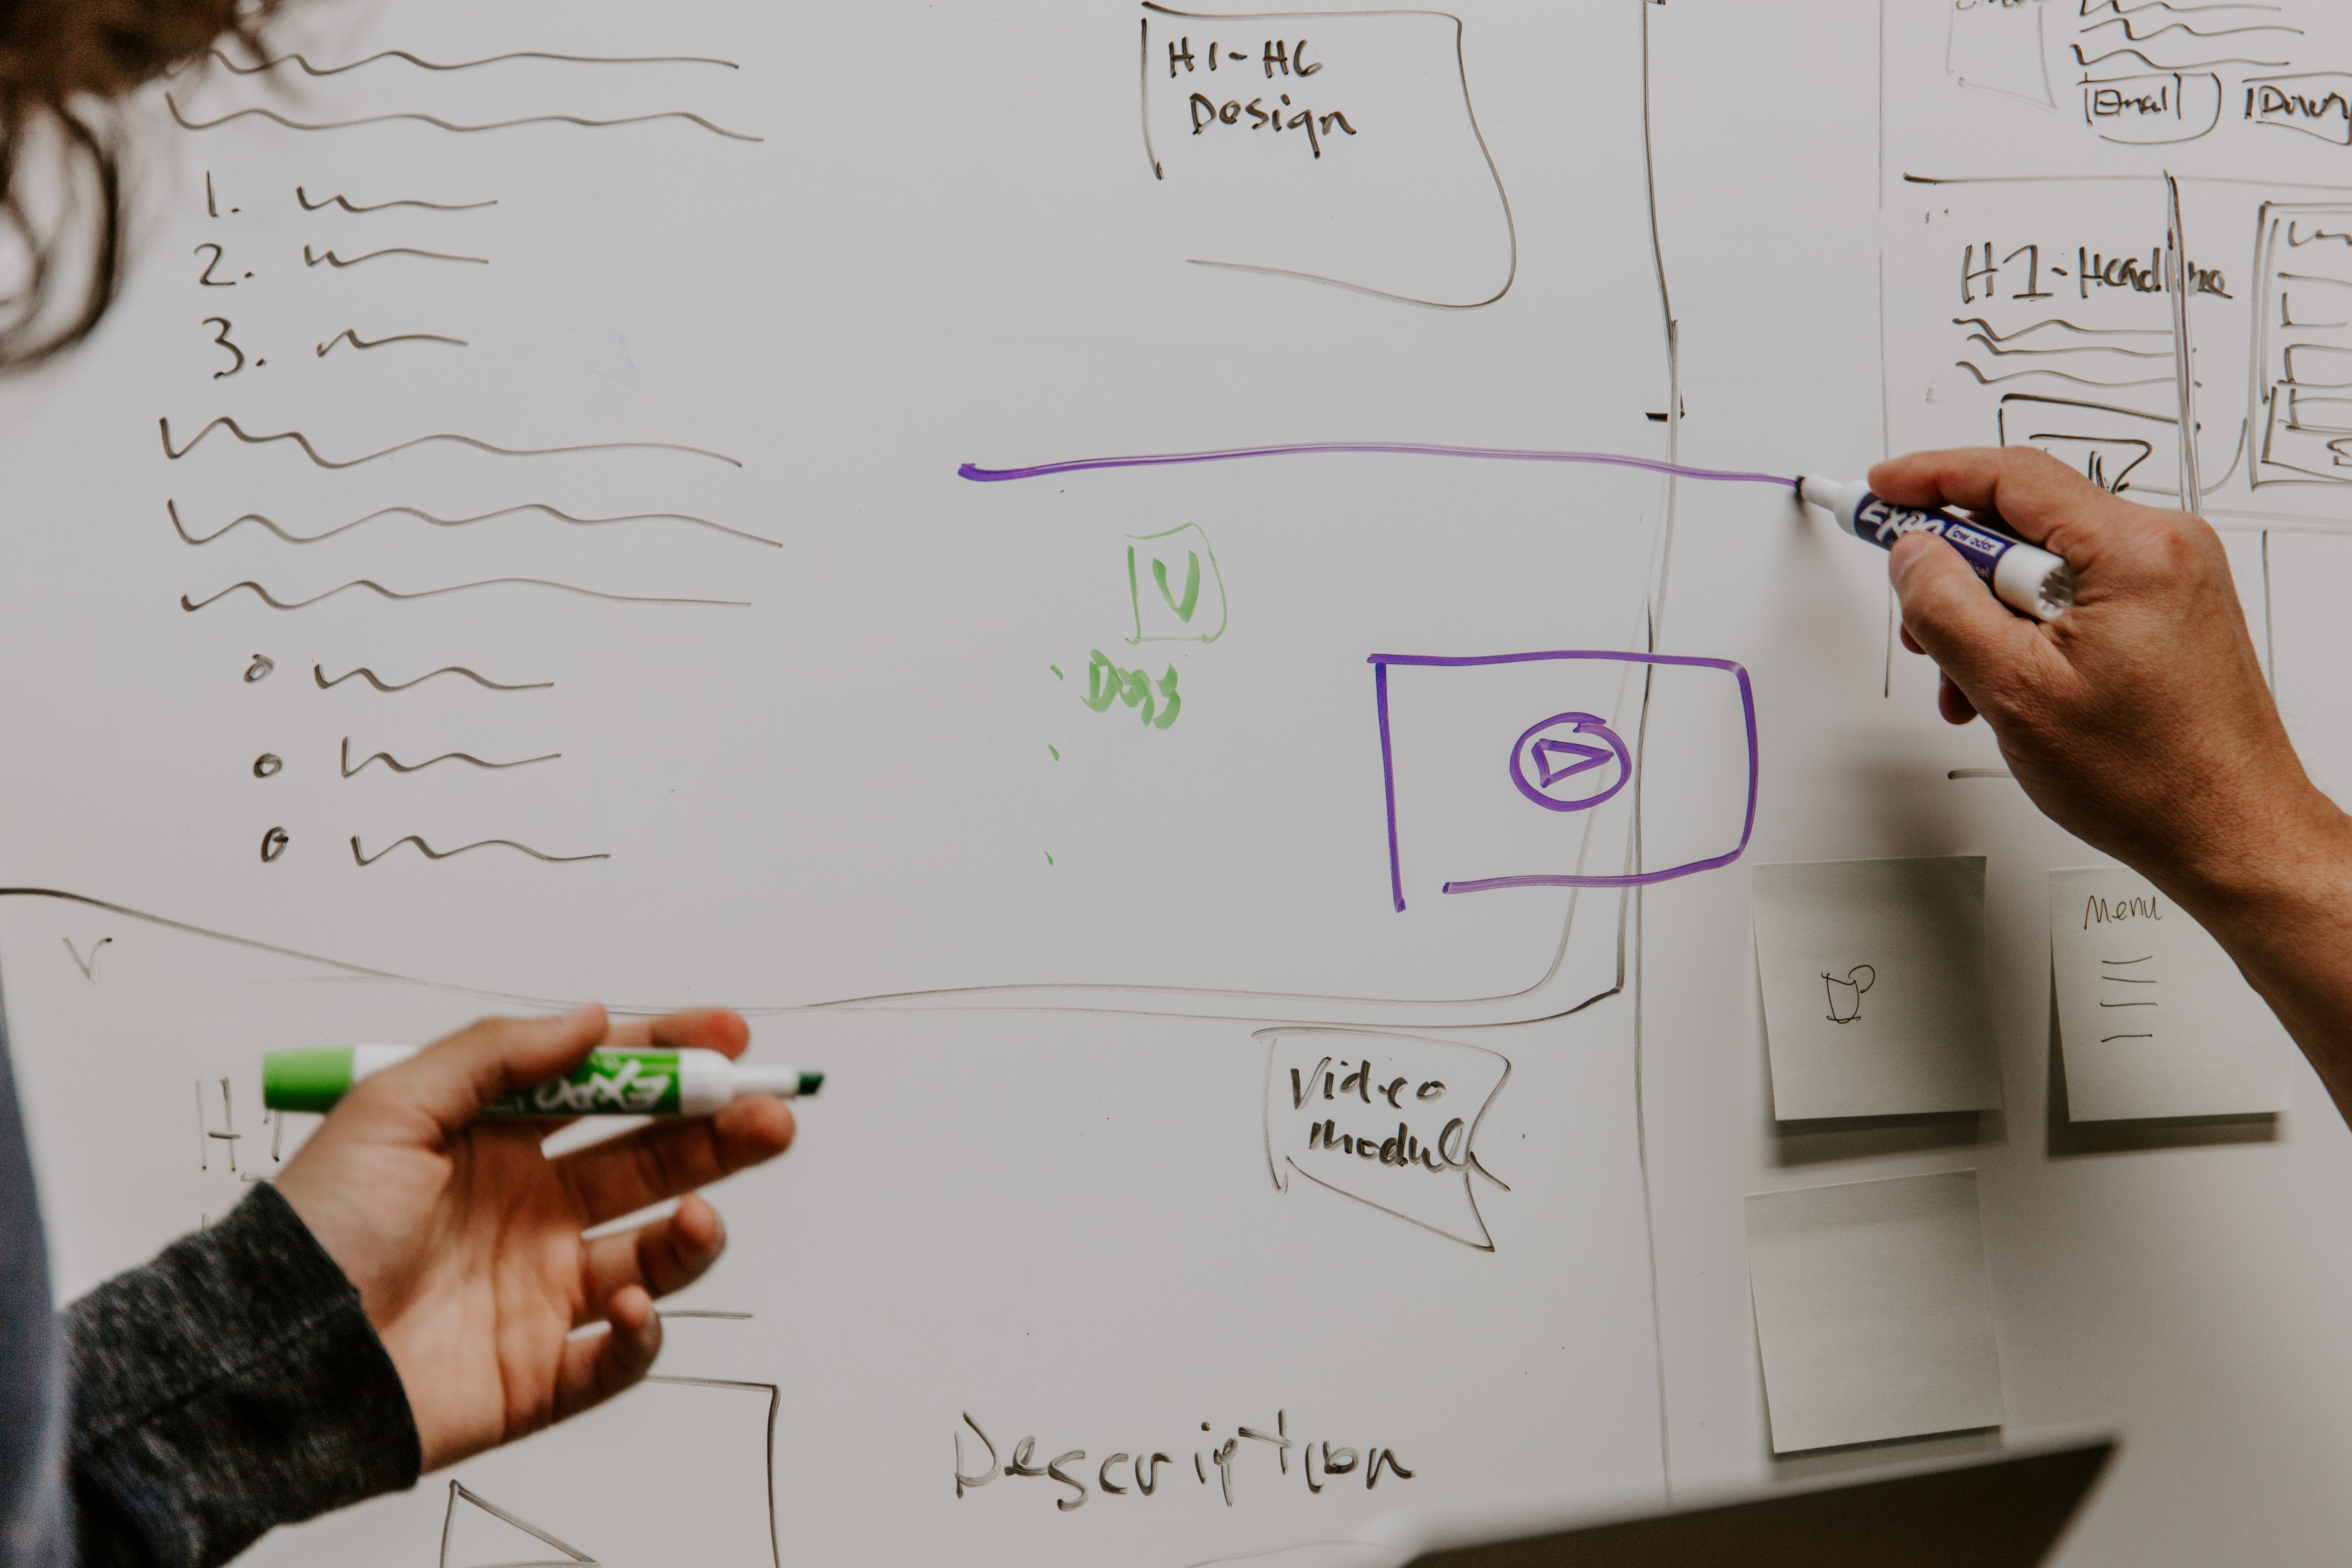 FeedMob's co-founders whiteboard and brainstorm product market fit with mobile analytics and media buying services solution